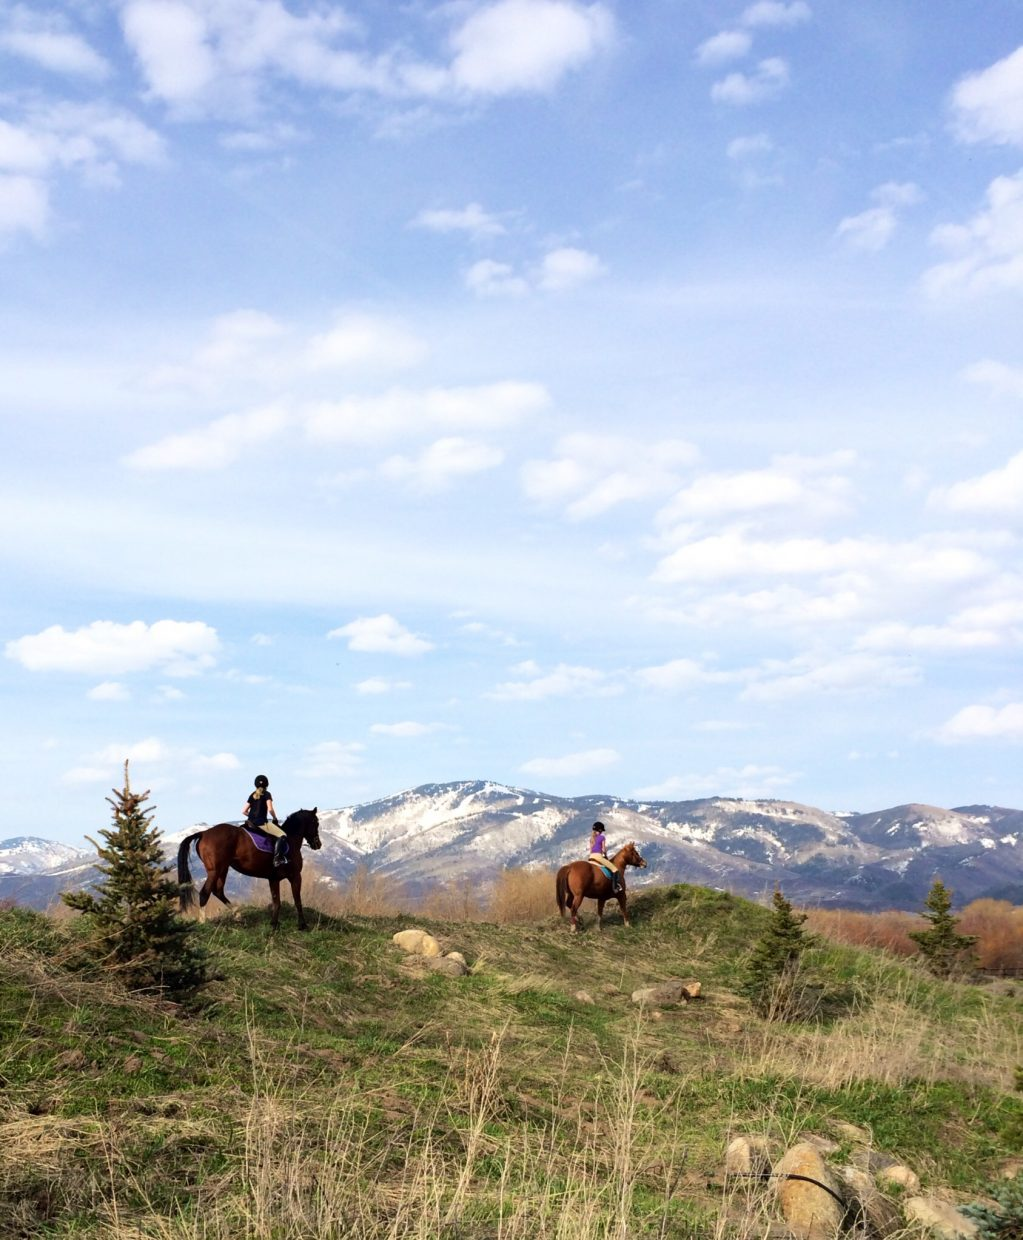 Estelle and Cosette on their first spring ride at Sidney Peak. Submitted by: Erika Janin